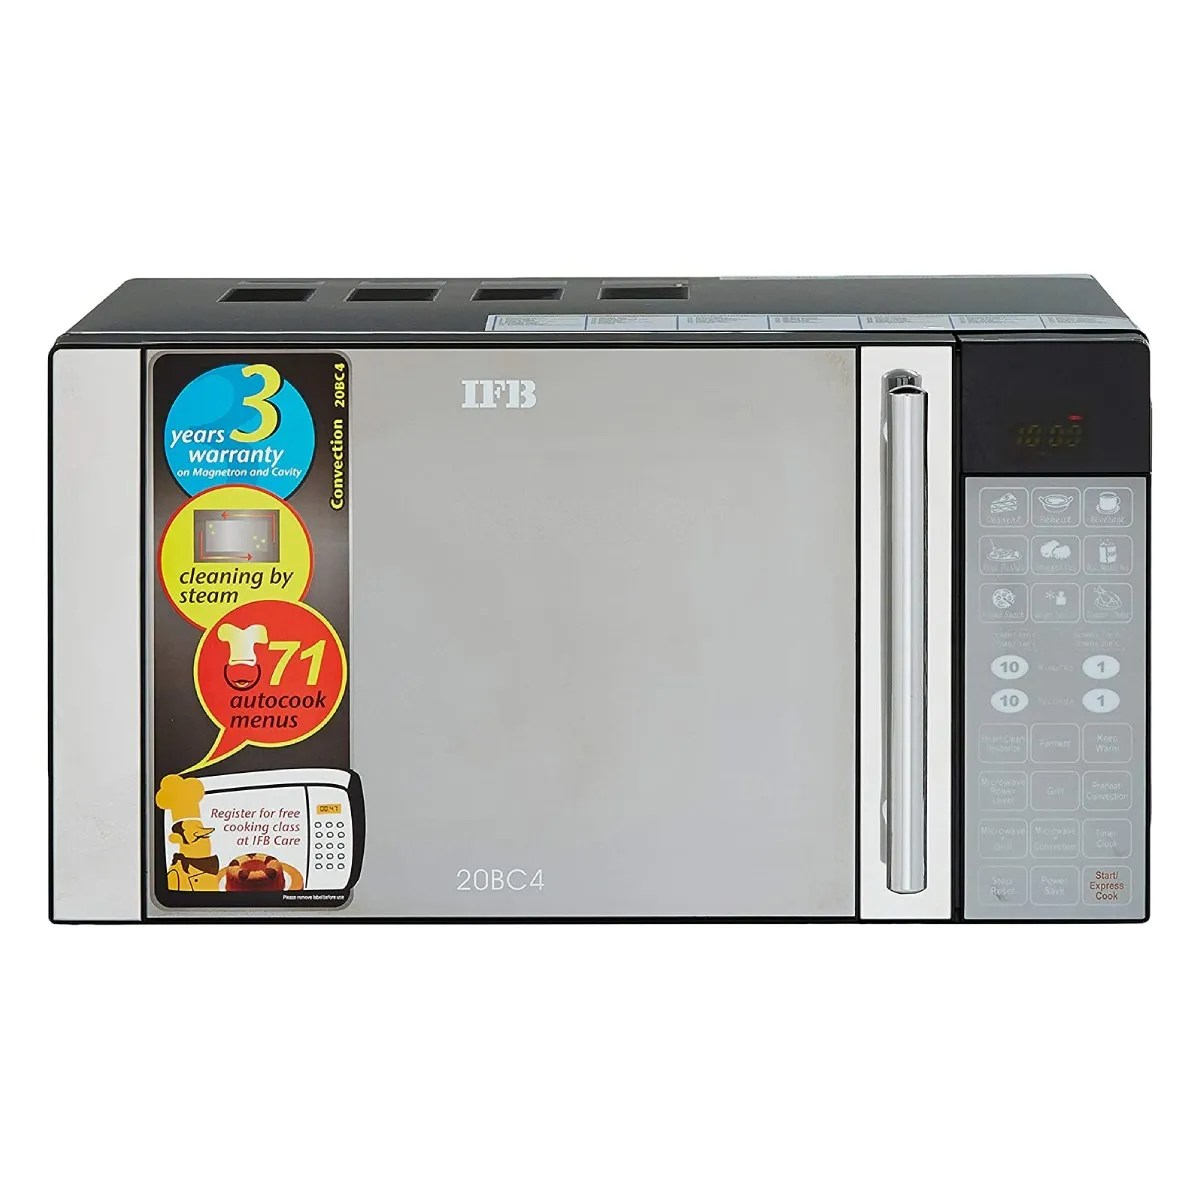 ifb 20bc4 20 l convection microwave oven